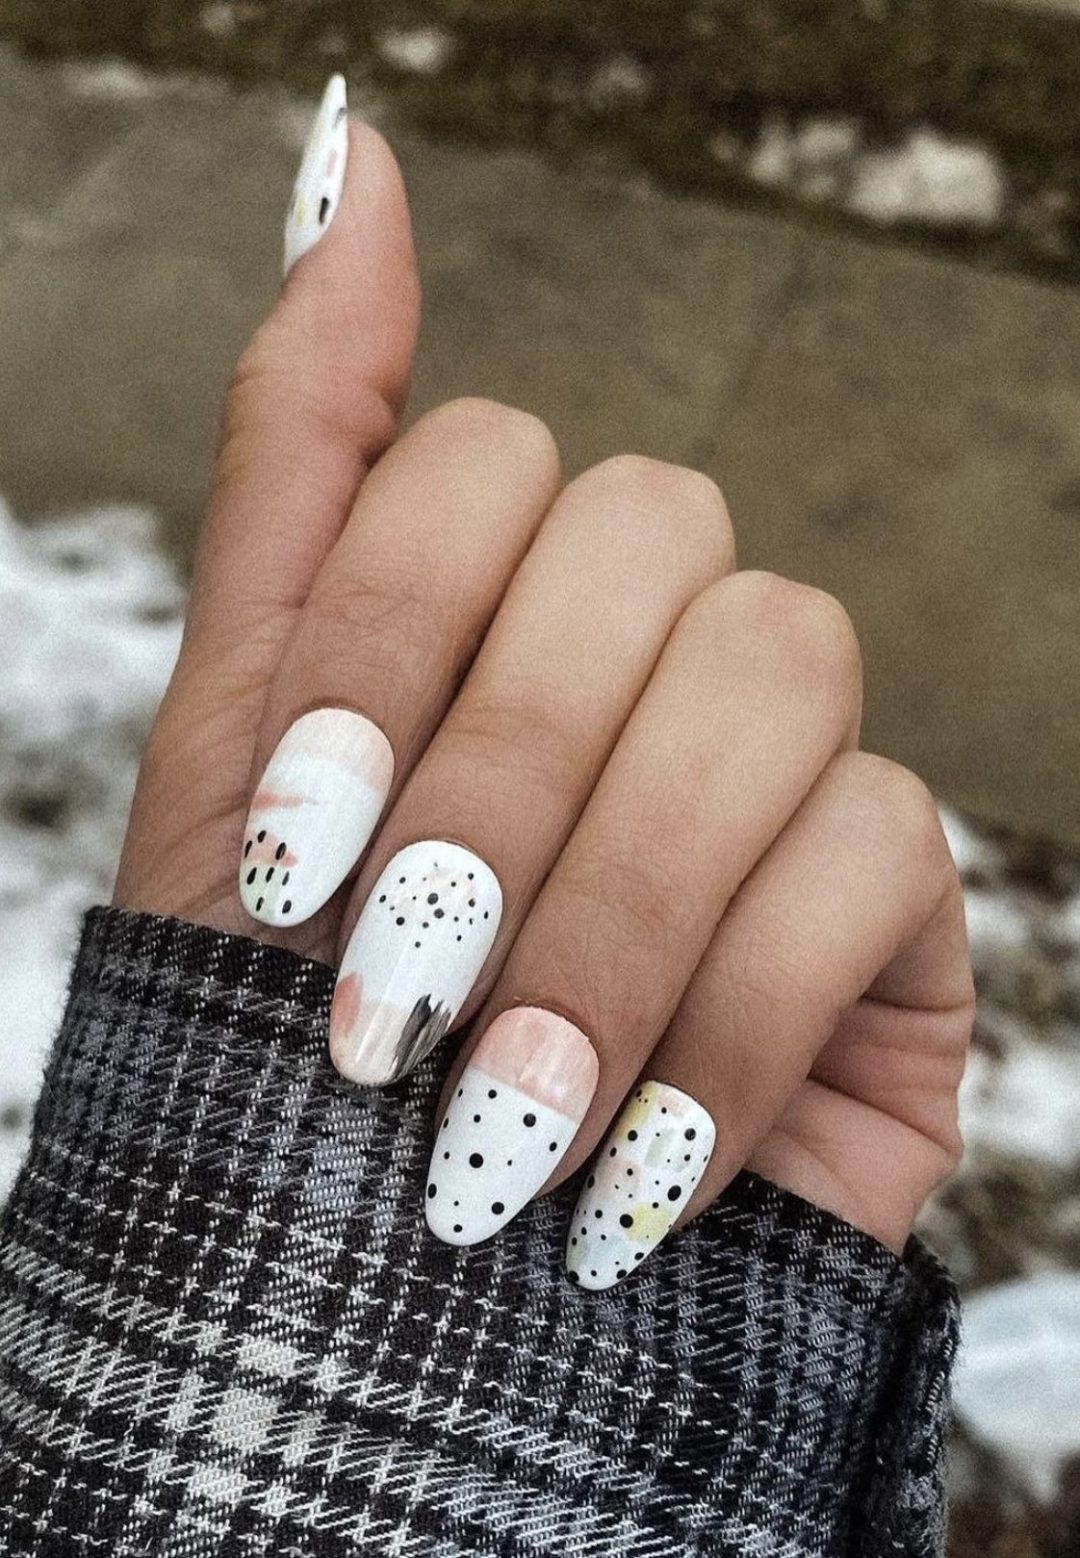 White abstract nails with minimalist patterns